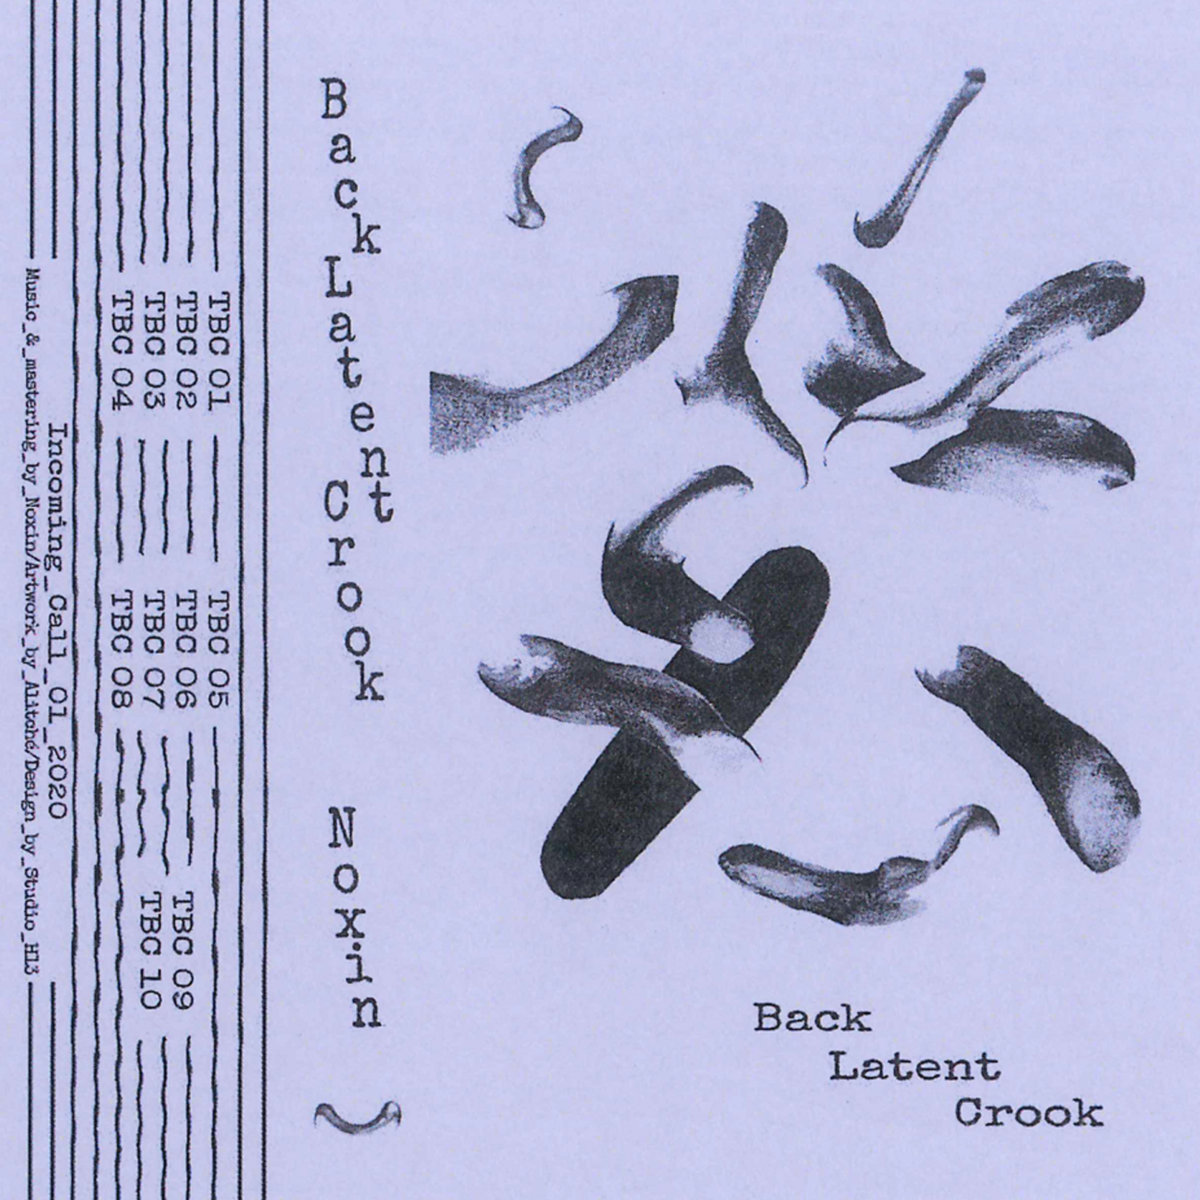 Back Latent Crook